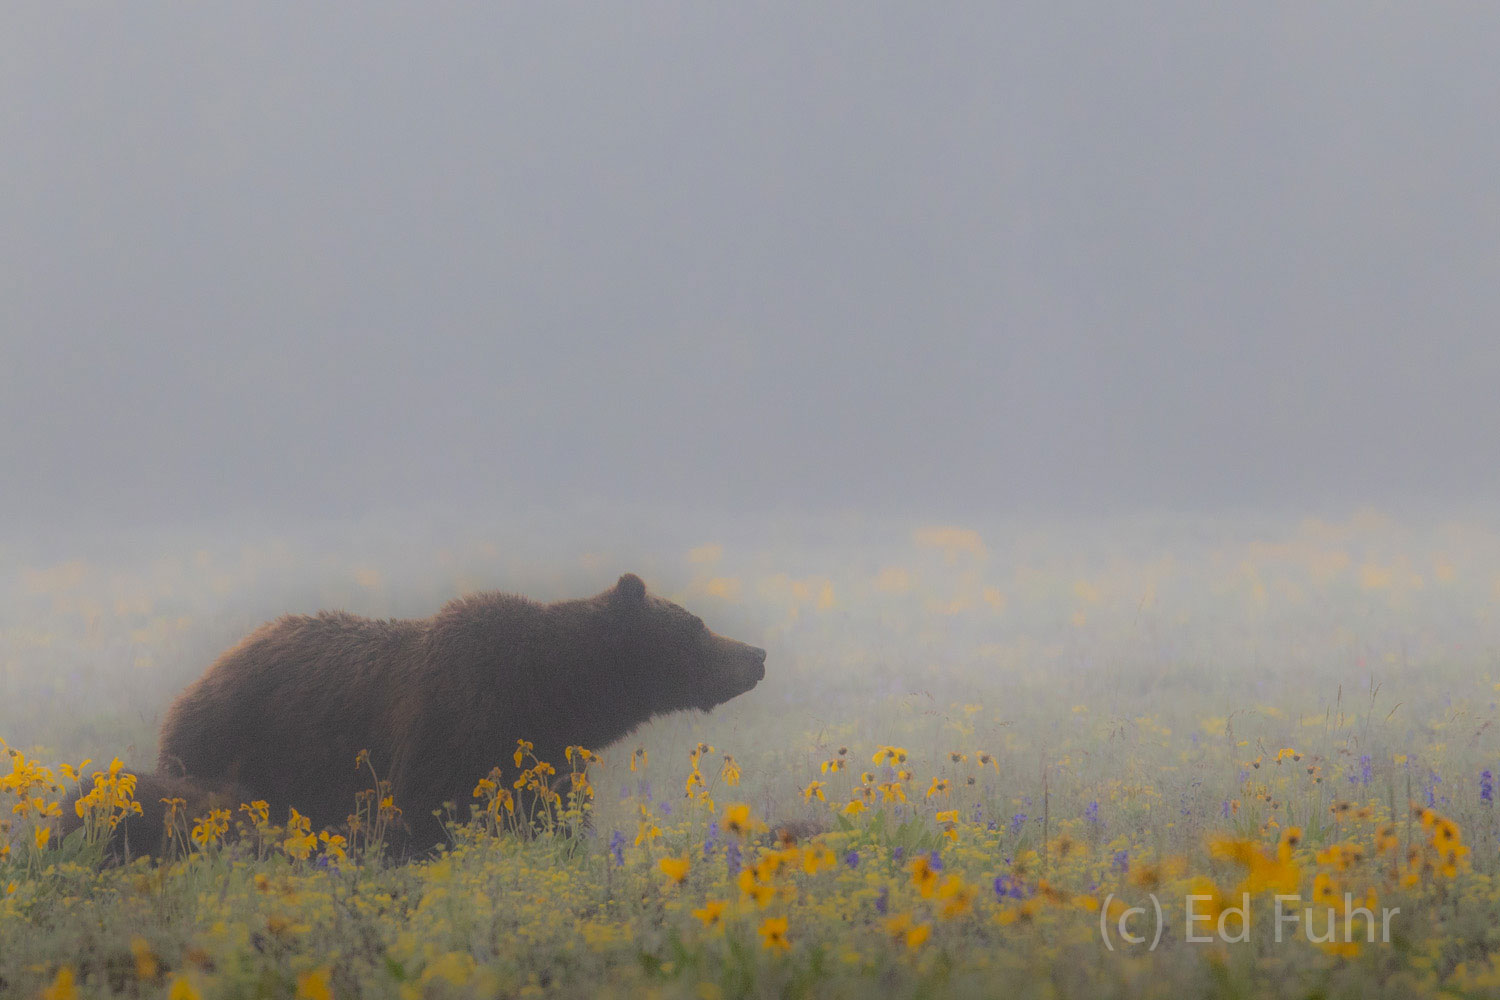 Through the fog, Grizzly 399 appears in a dreamy landscape of sage and flowers.